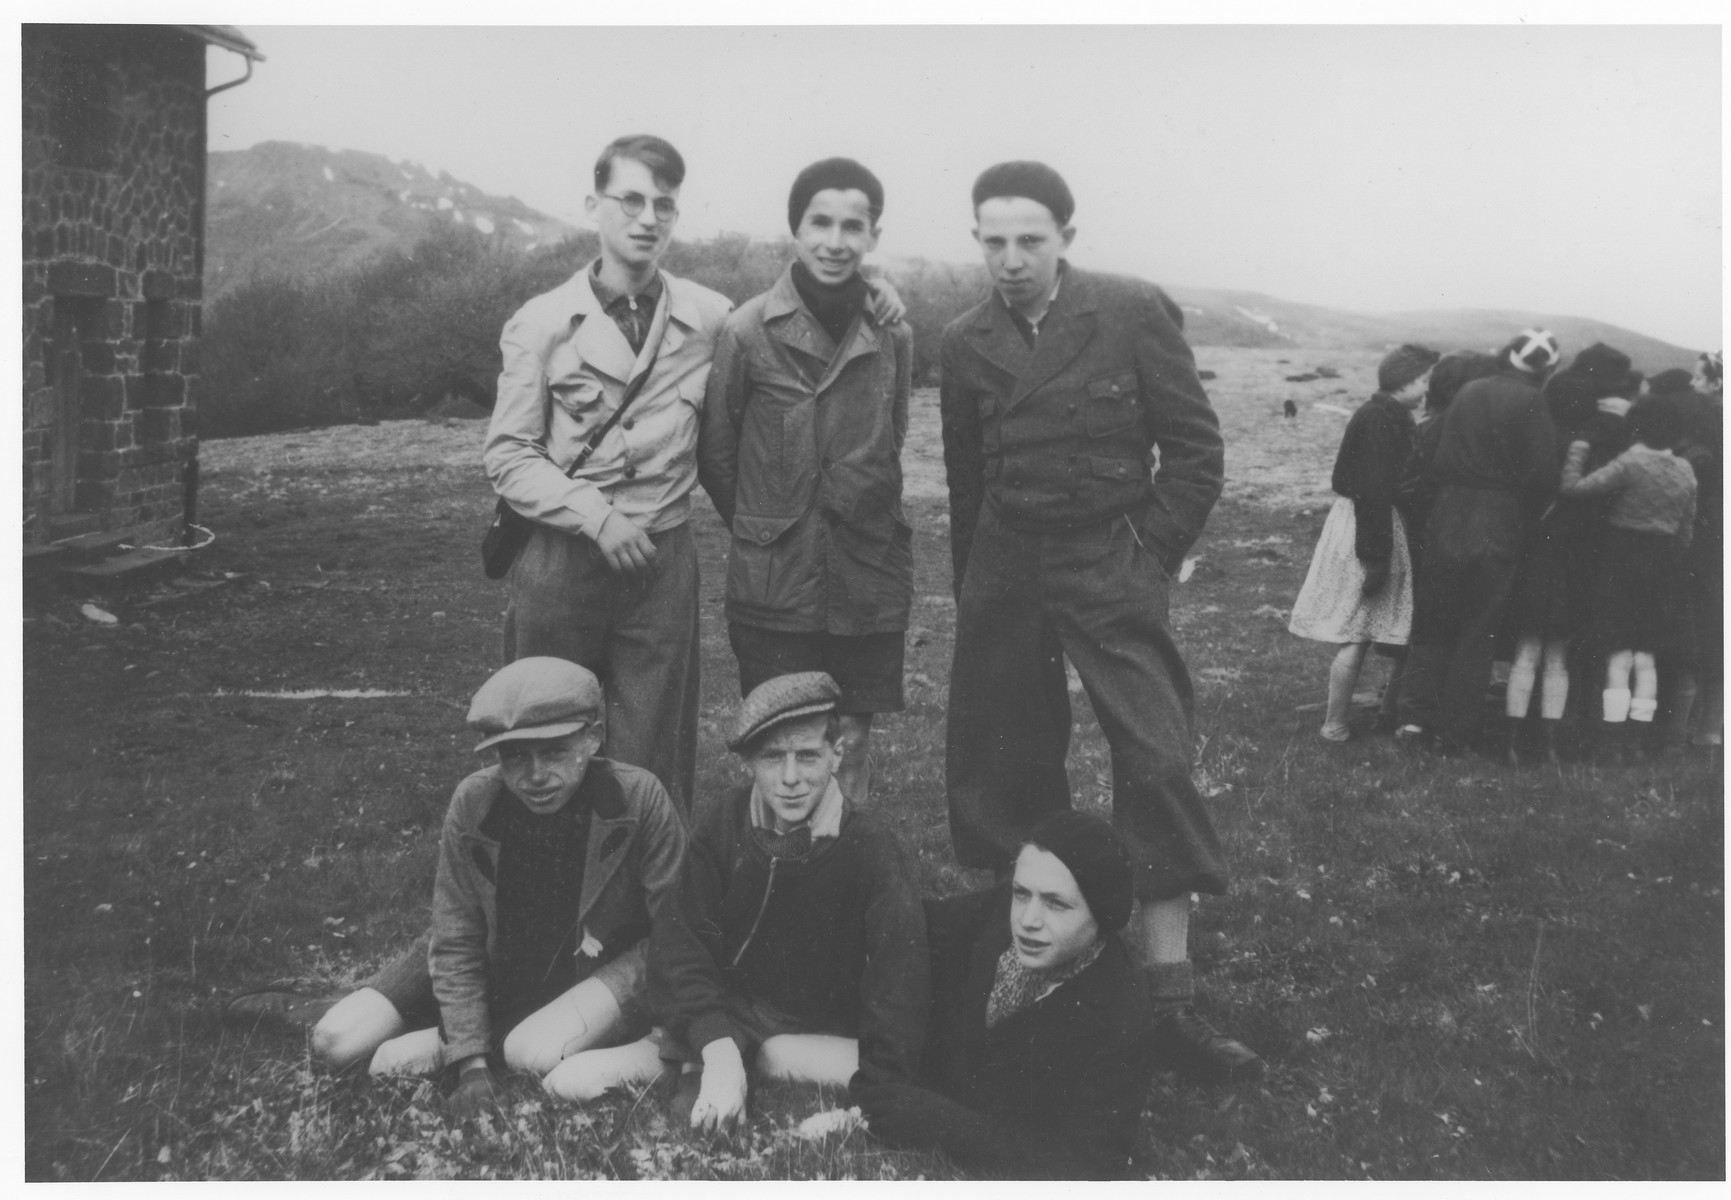 Werner Neuberger poses outside with a group of friends from the La Guette children's home.   Front row (left to right) Hans Blum, Edi Weiss, and Werner Neuberger.  Standing: Karl Schwarz, Herbert Ruhm amd Ludwig (Lutz) Scheucher.